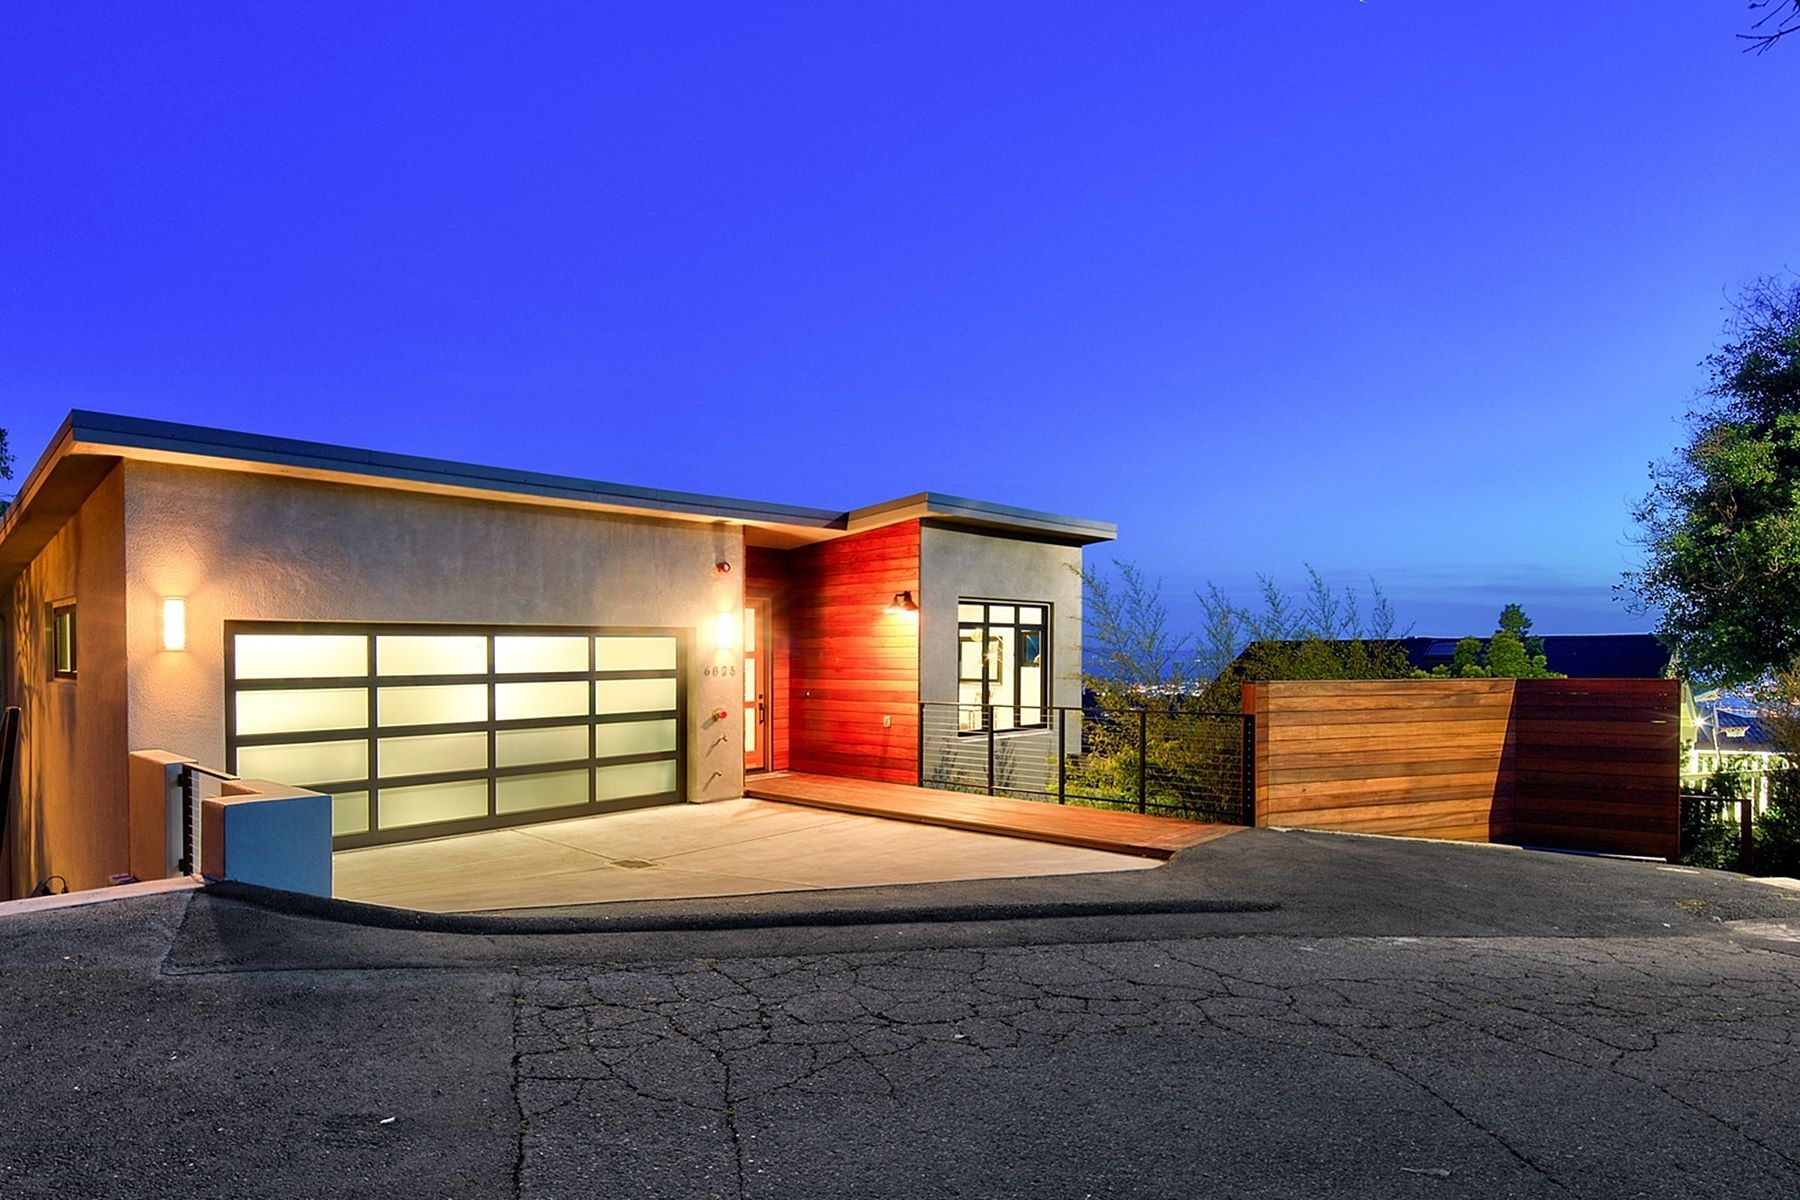 Single Family Home for Sale at Stunning Bay Views 6825 Elverton Drive Oakland, California 94611 United States